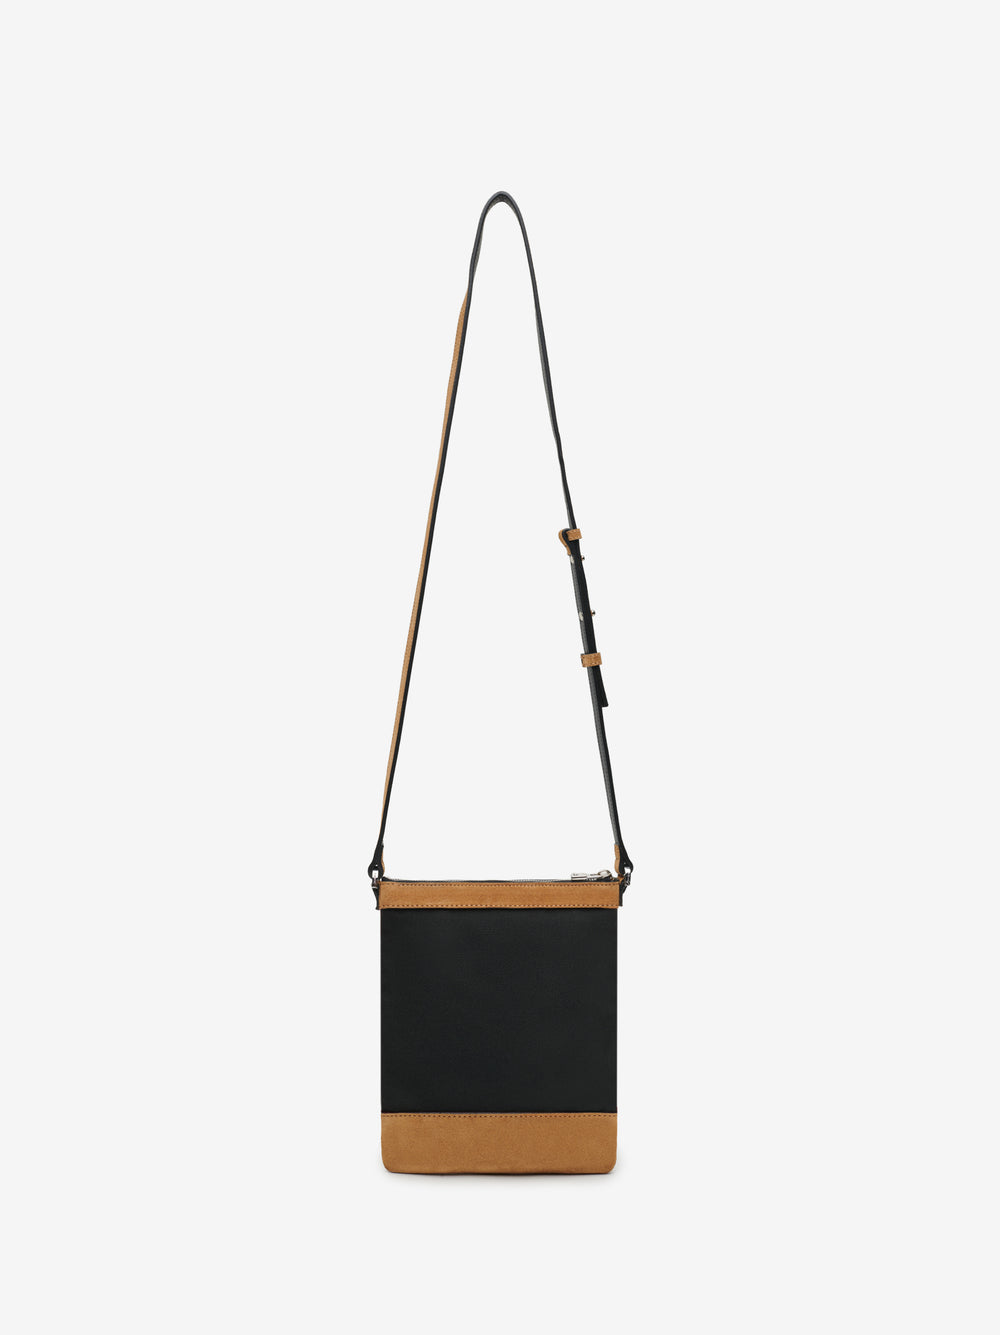 CANVAS CROSSBODY - BLACK / TAN